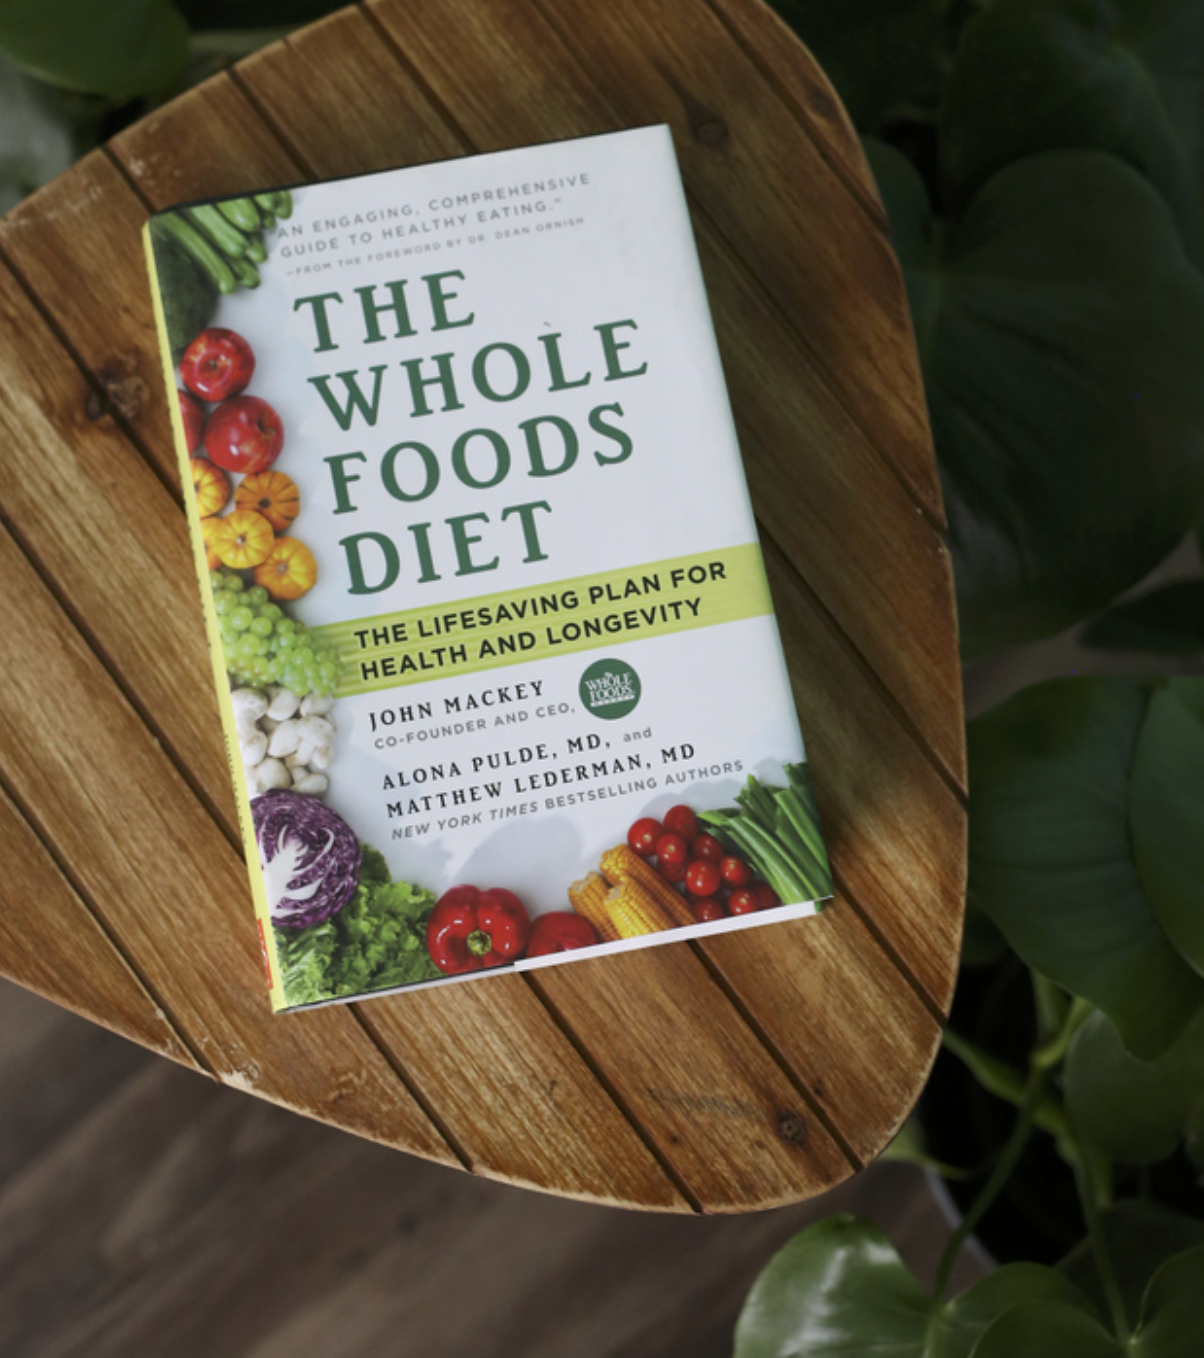 The Whole Foods Diet - John Mackey along with Dr. Alona Pulde, MD and Dr. Matthew Lederman, MDStraightforward, comprehensive and science-back look at whole food plant based eating